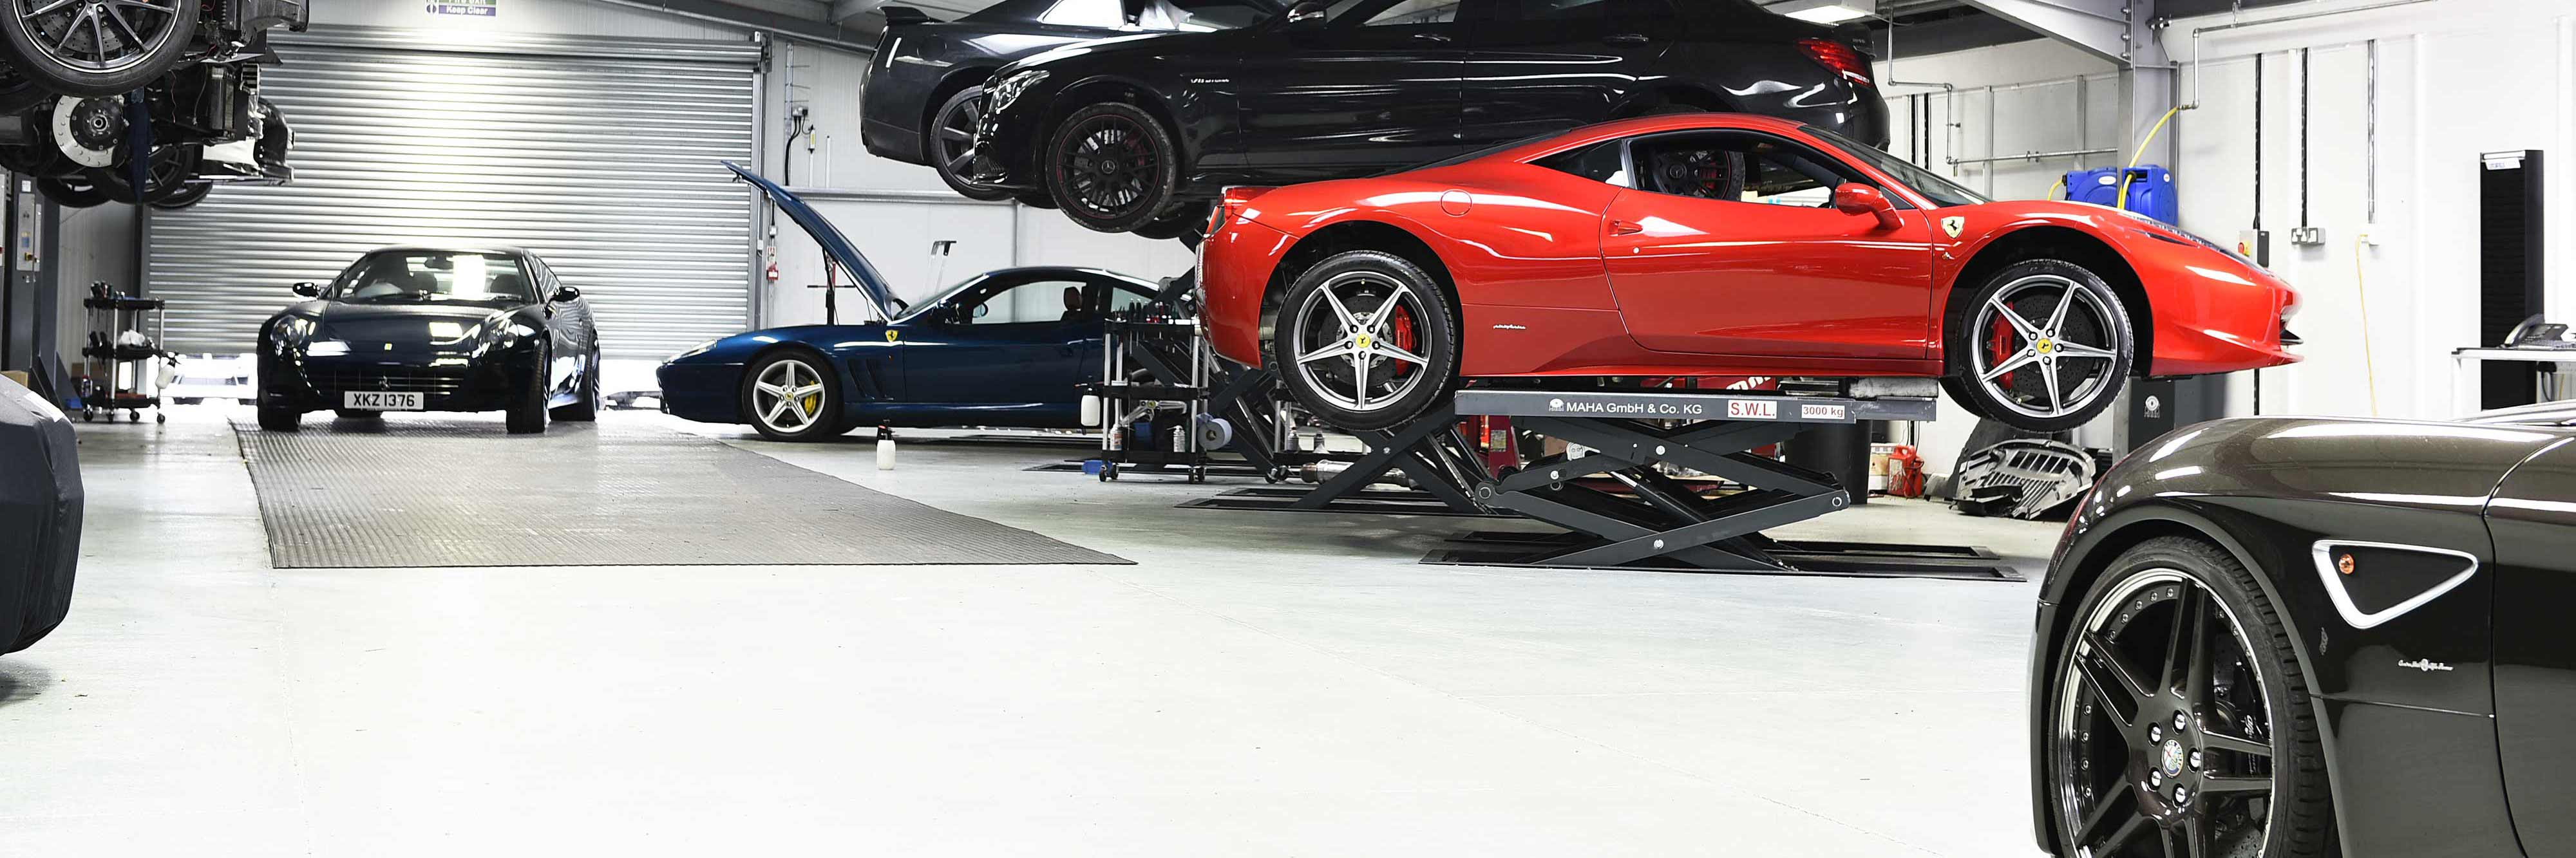 Ferrari 458 Litchfield Workshop